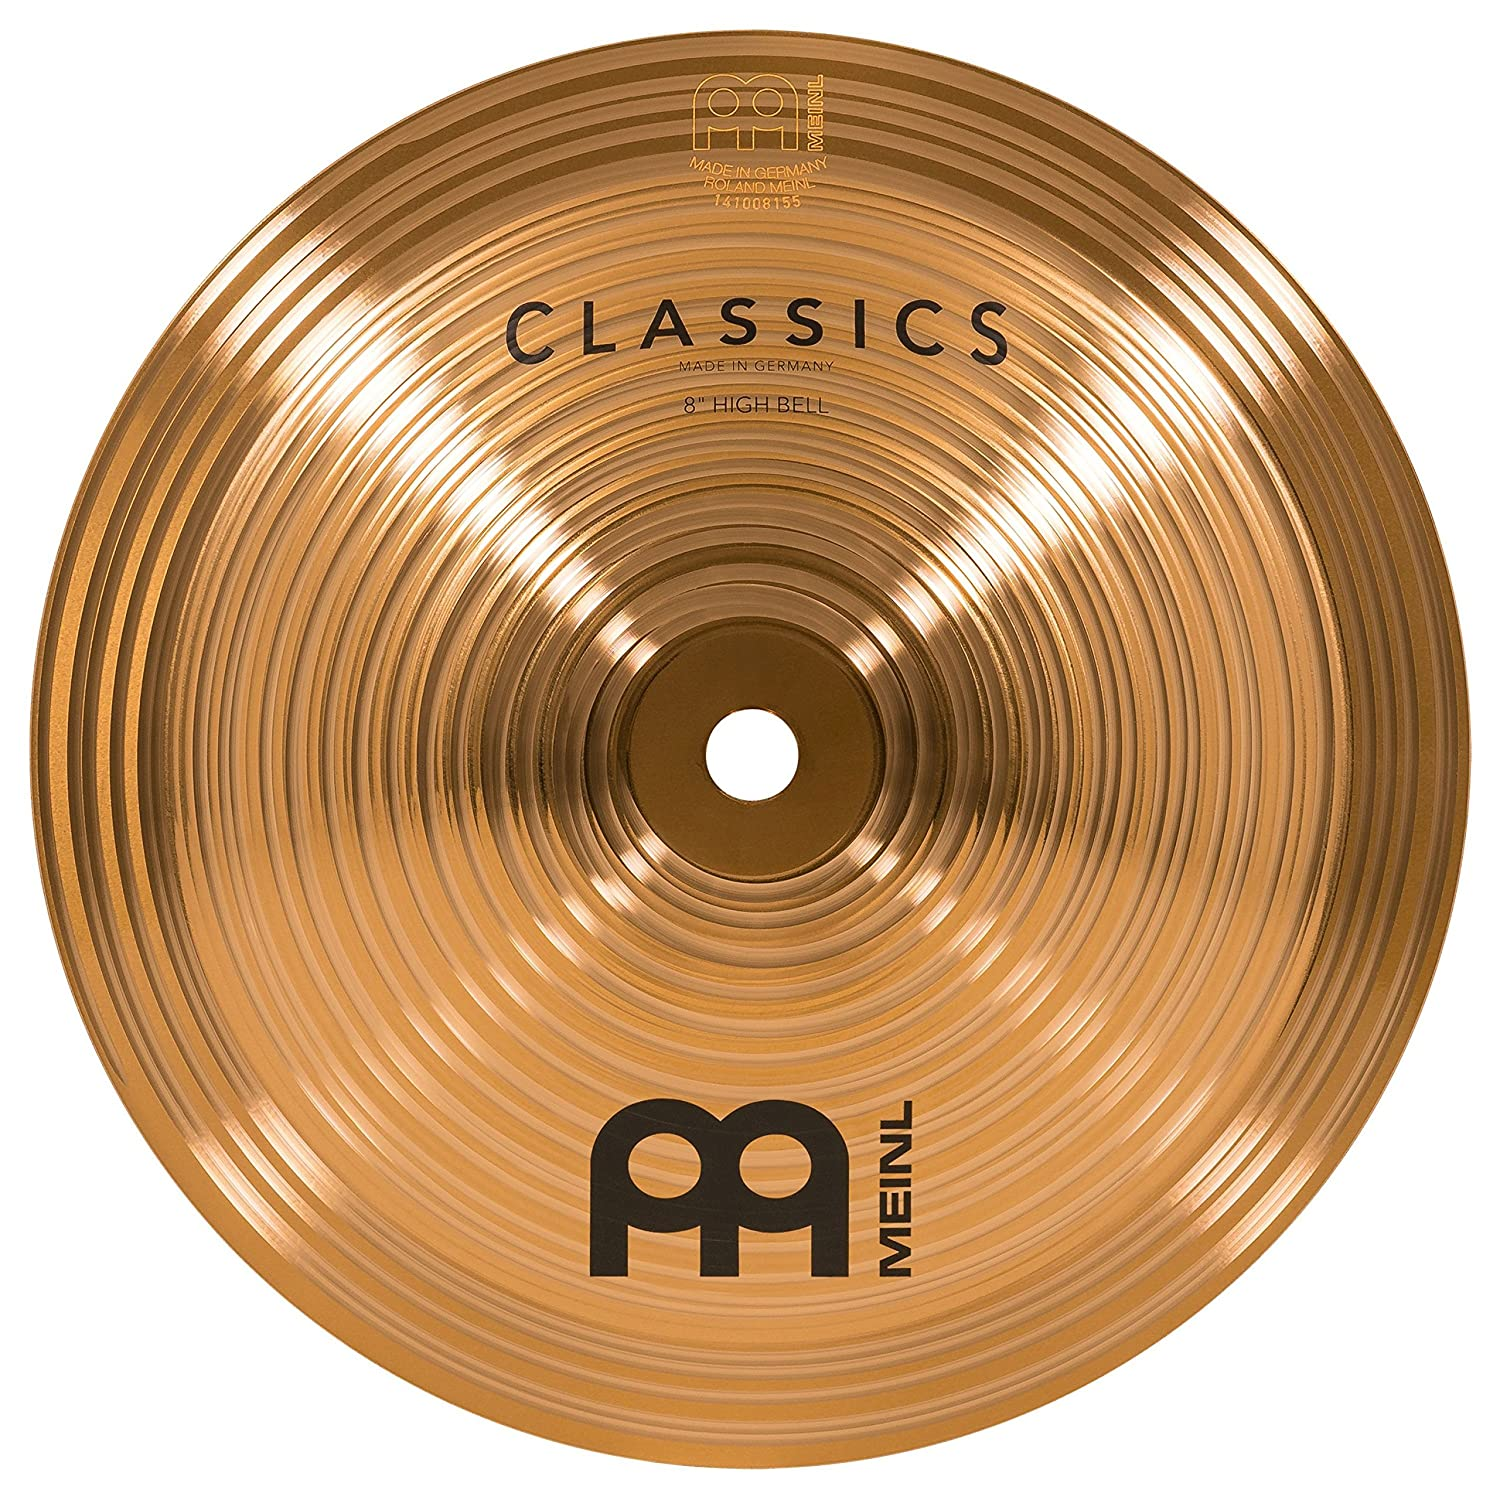 Meinl Cymbals C8BH 8-Inch Classics Traditional High Bell